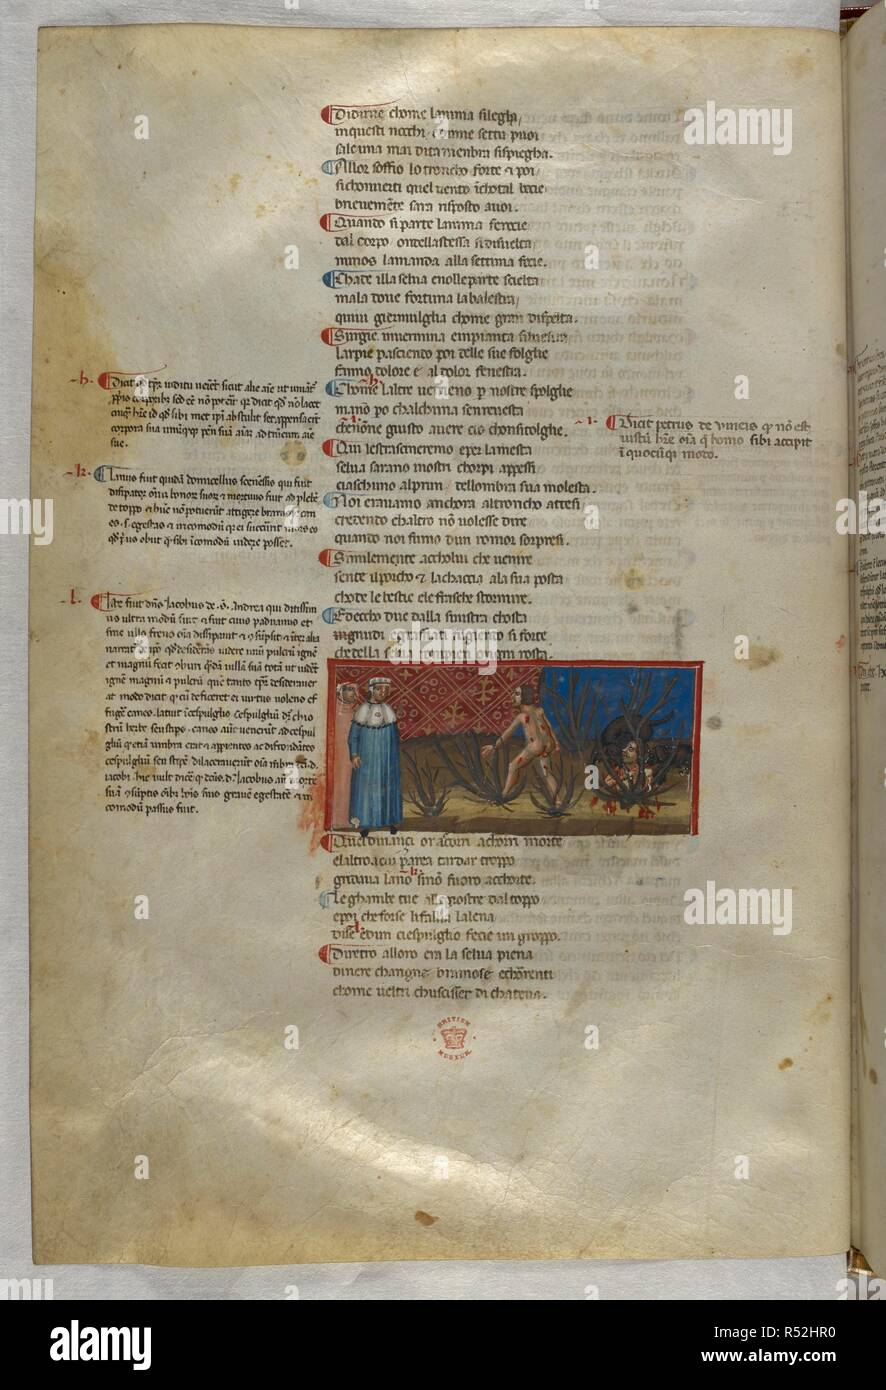 Inferno: They speak to suicides that have been turned into trees. Dante Alighieri, Divina Commedia ( The Divine Comedy ), with a commentary in Latin. 1st half of the 14th century. Source: Egerton 943, f.24v. Language: Italian, Latin. - Stock Image